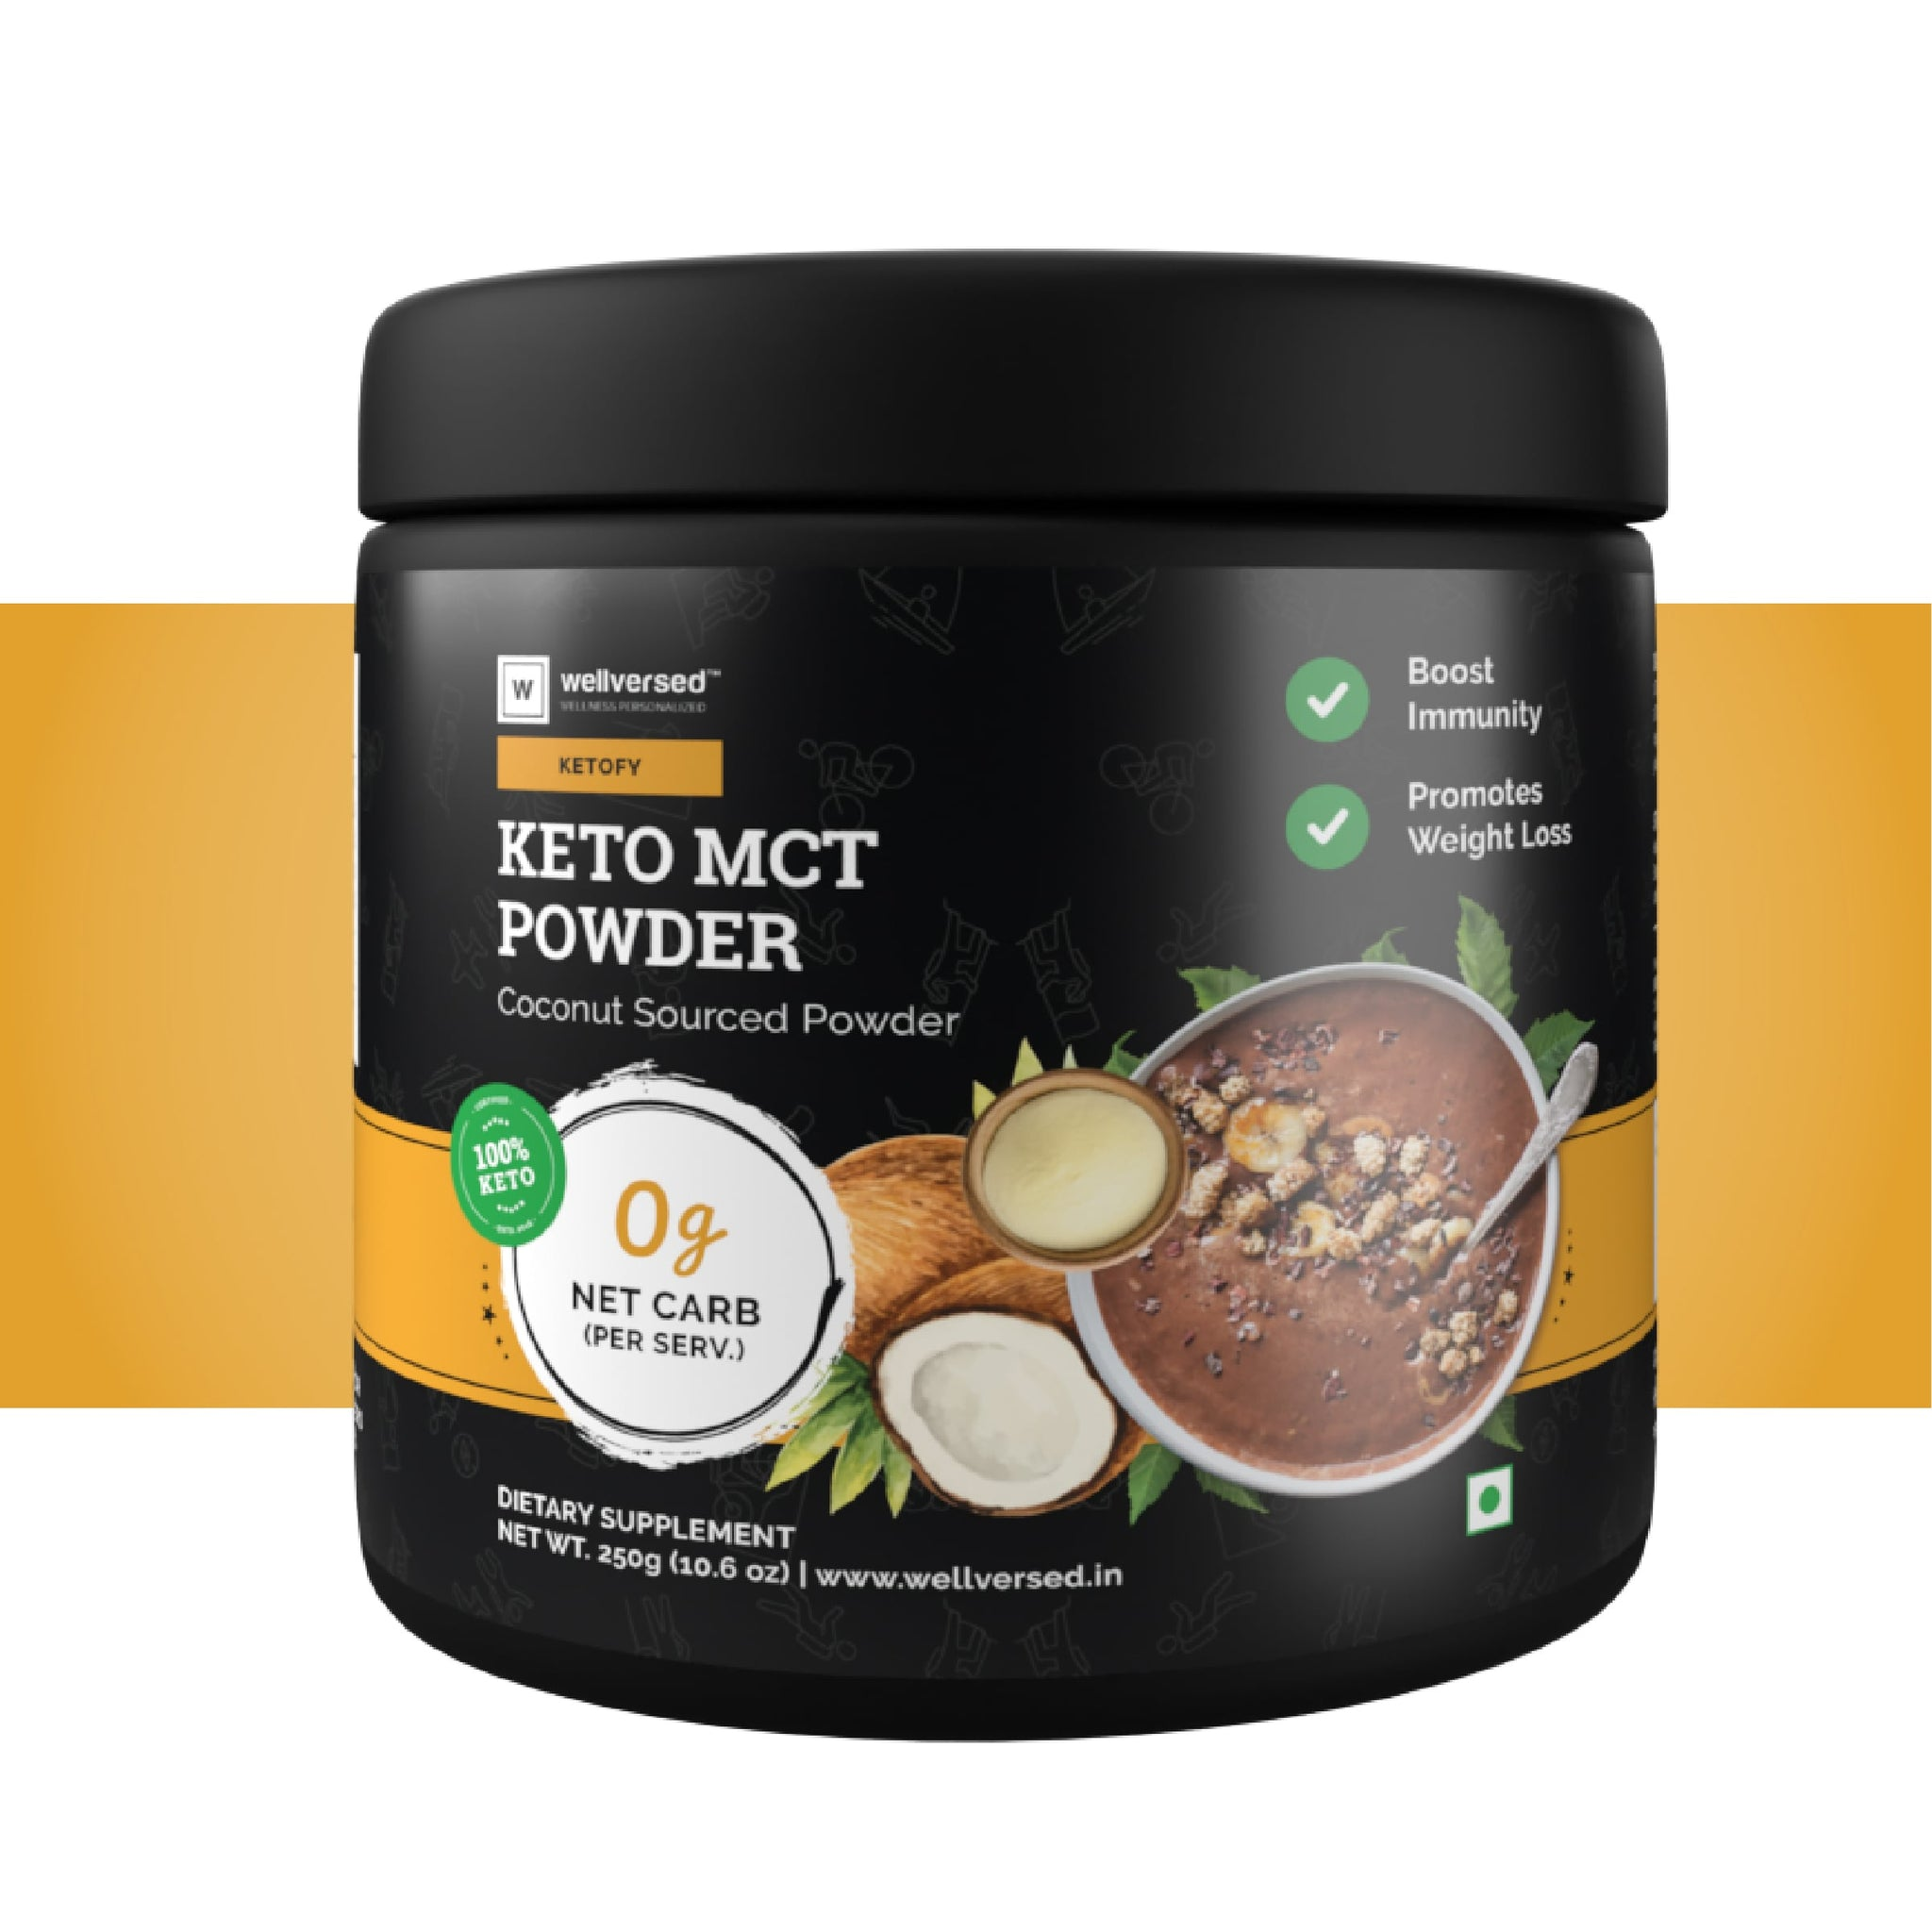 Ketofy MCT Powder | 100% Pure